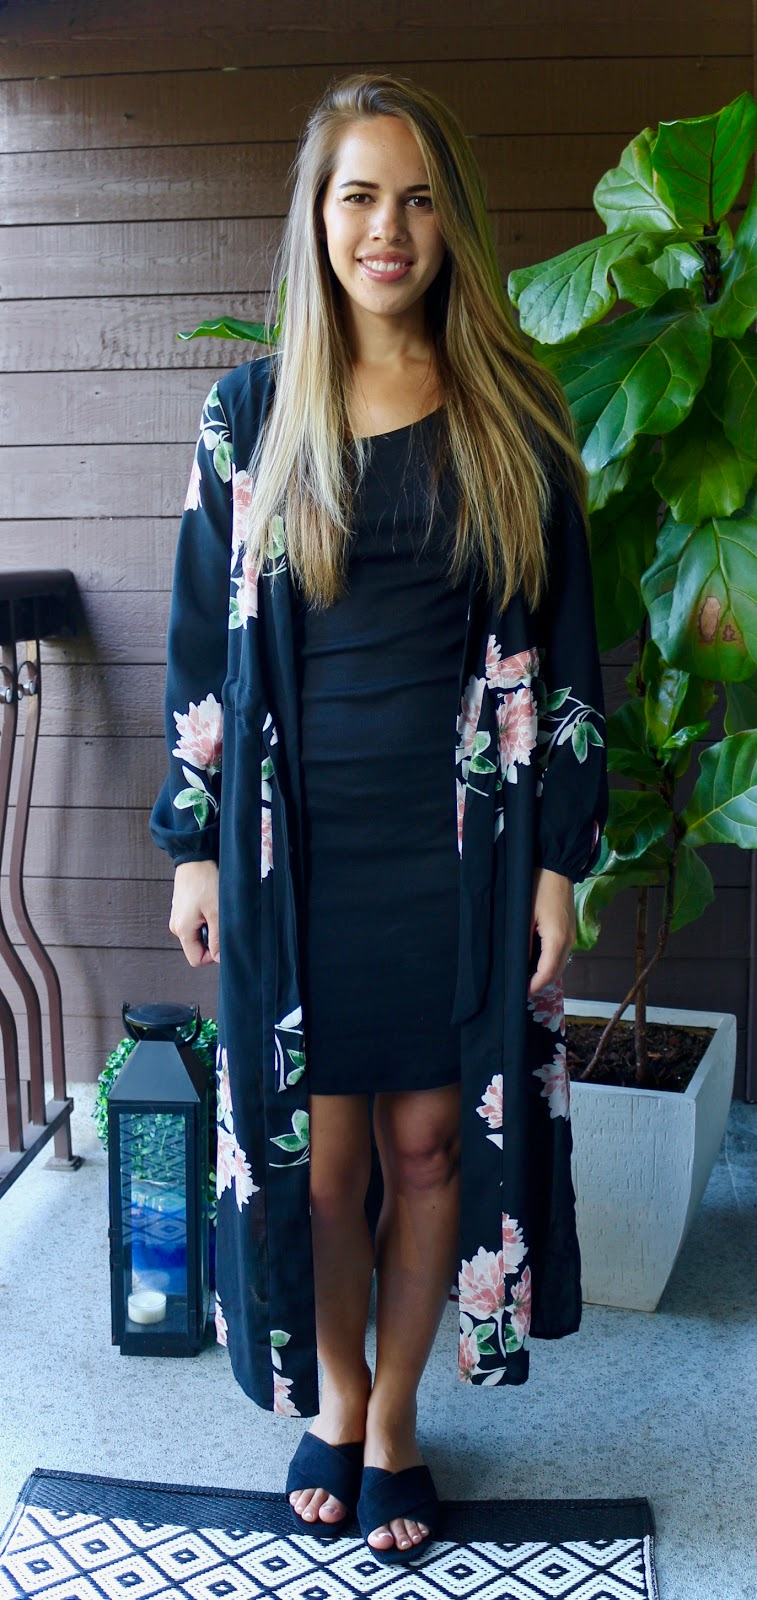 Jules in Flats - Black Dress with Kimono